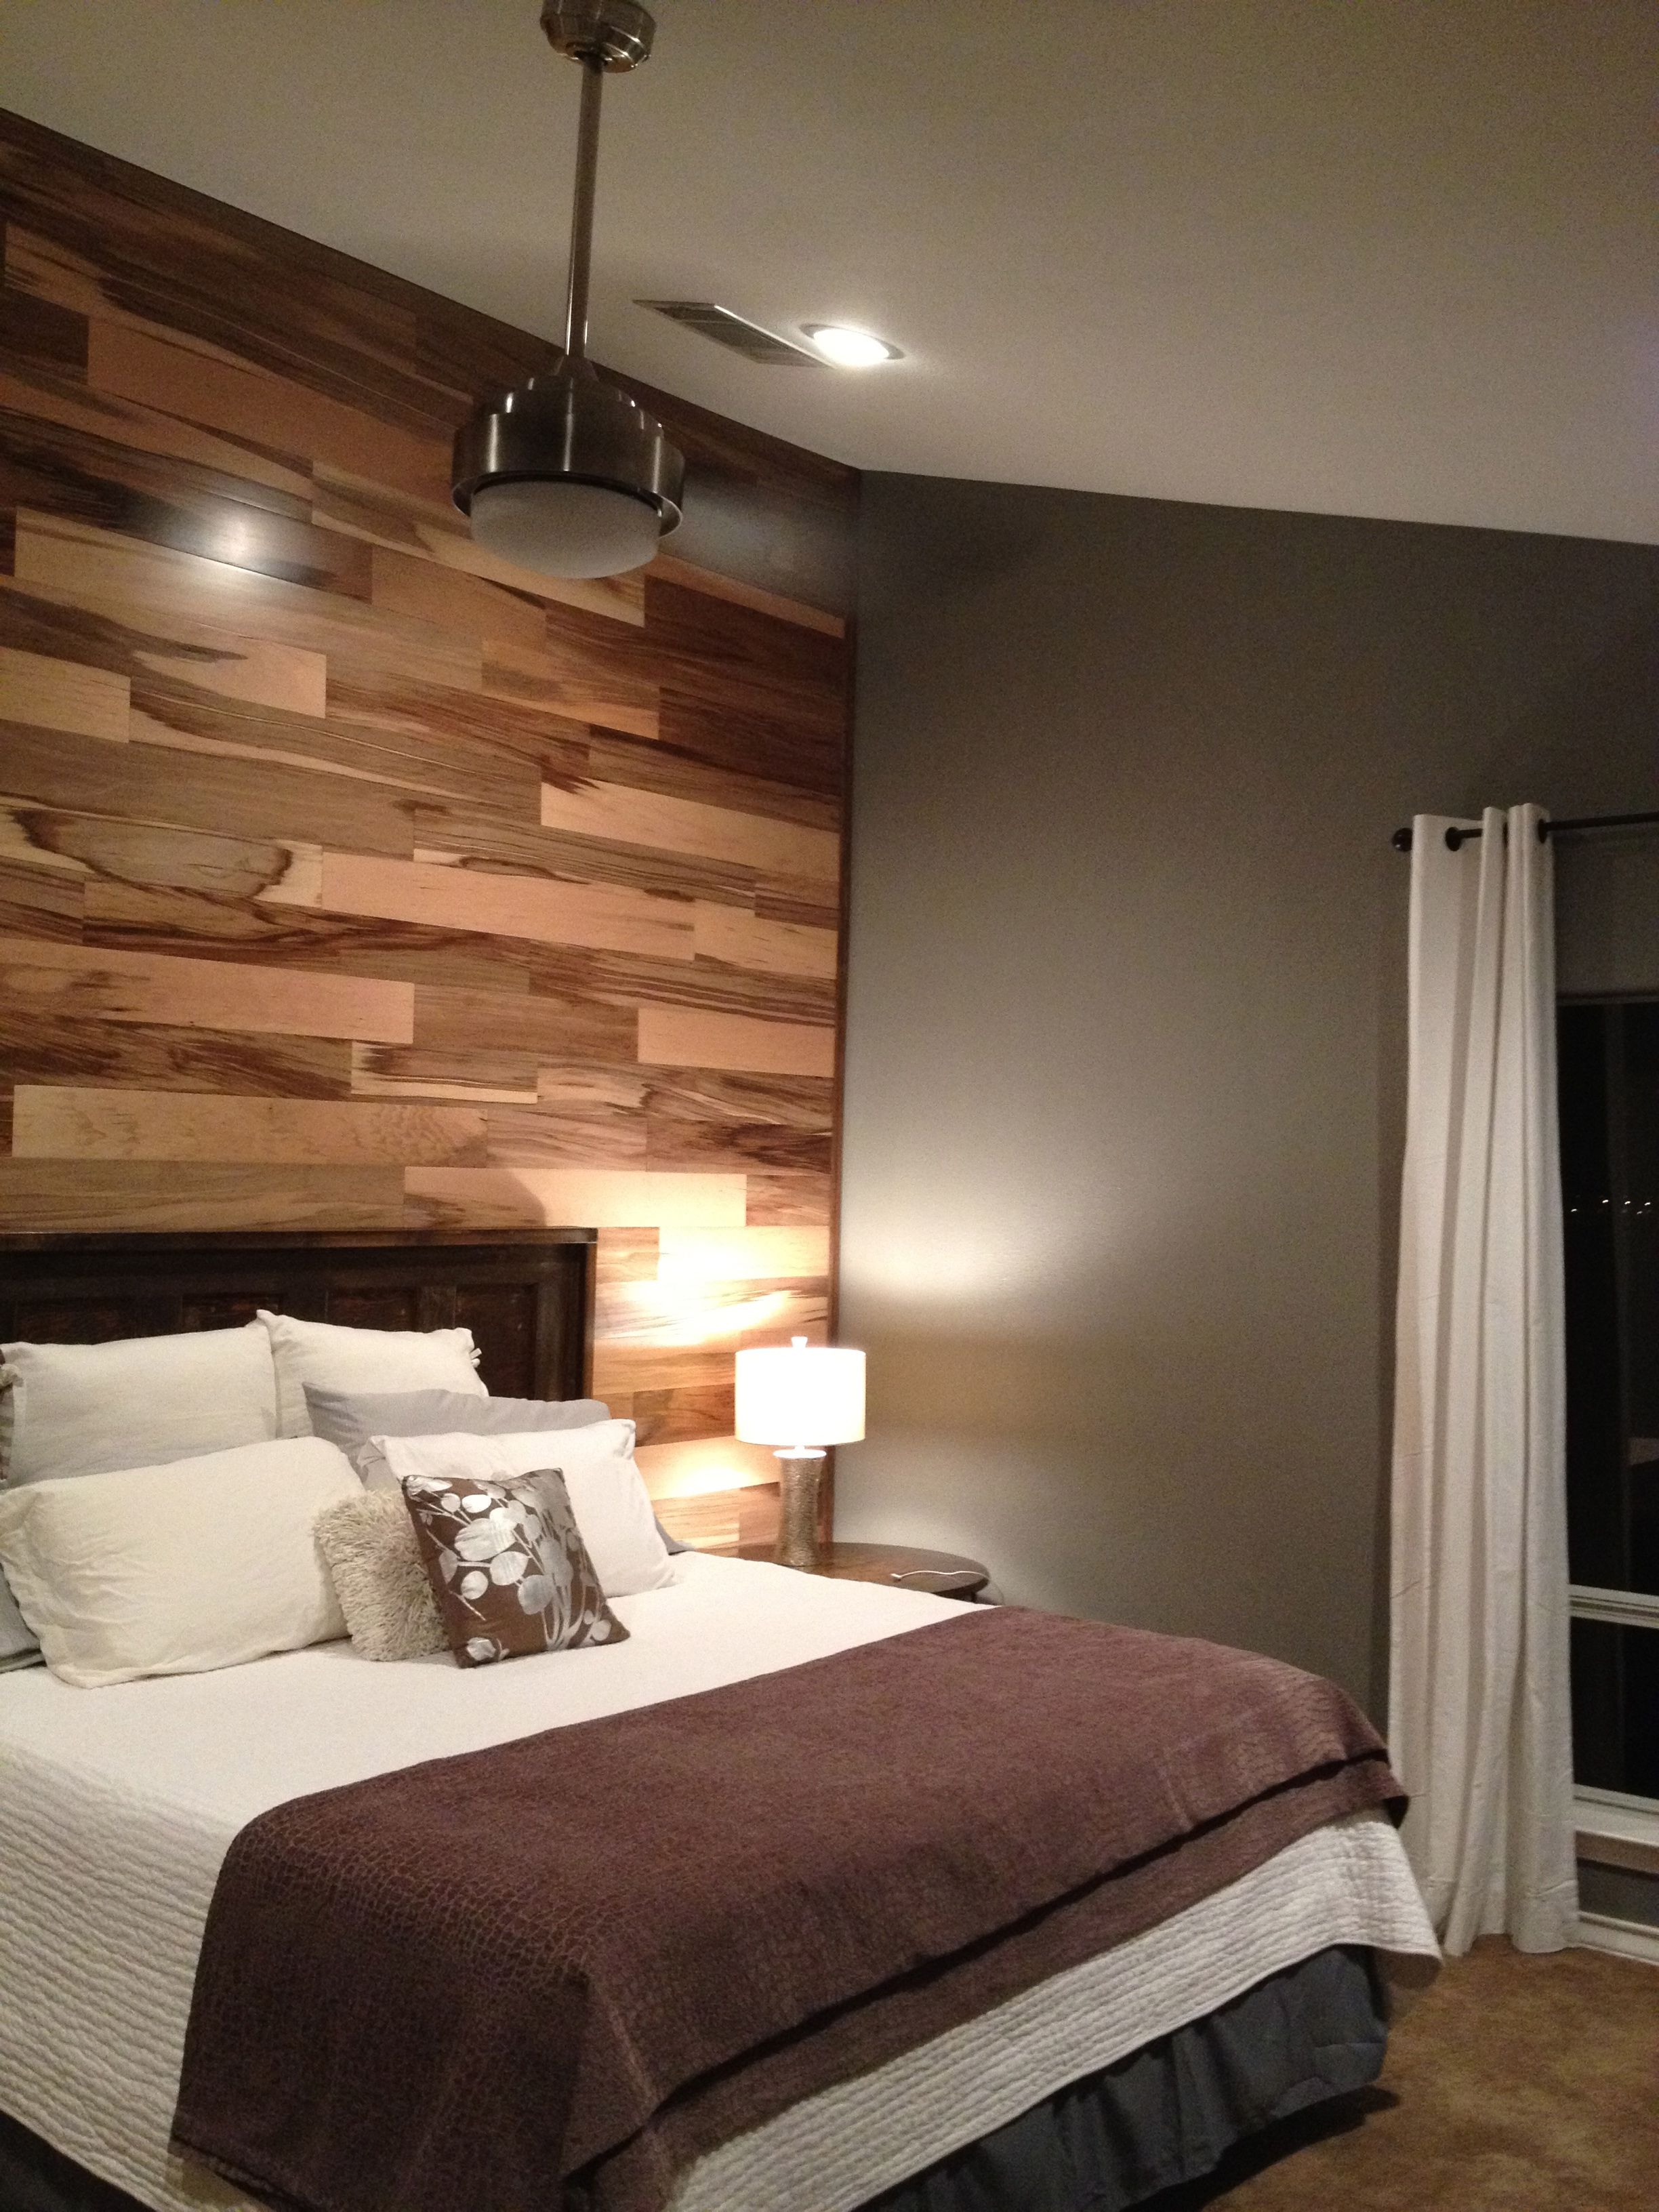 Bedroom Flooring Ideas Pinterest Love The Floor On The Wall Decorating Pinterest